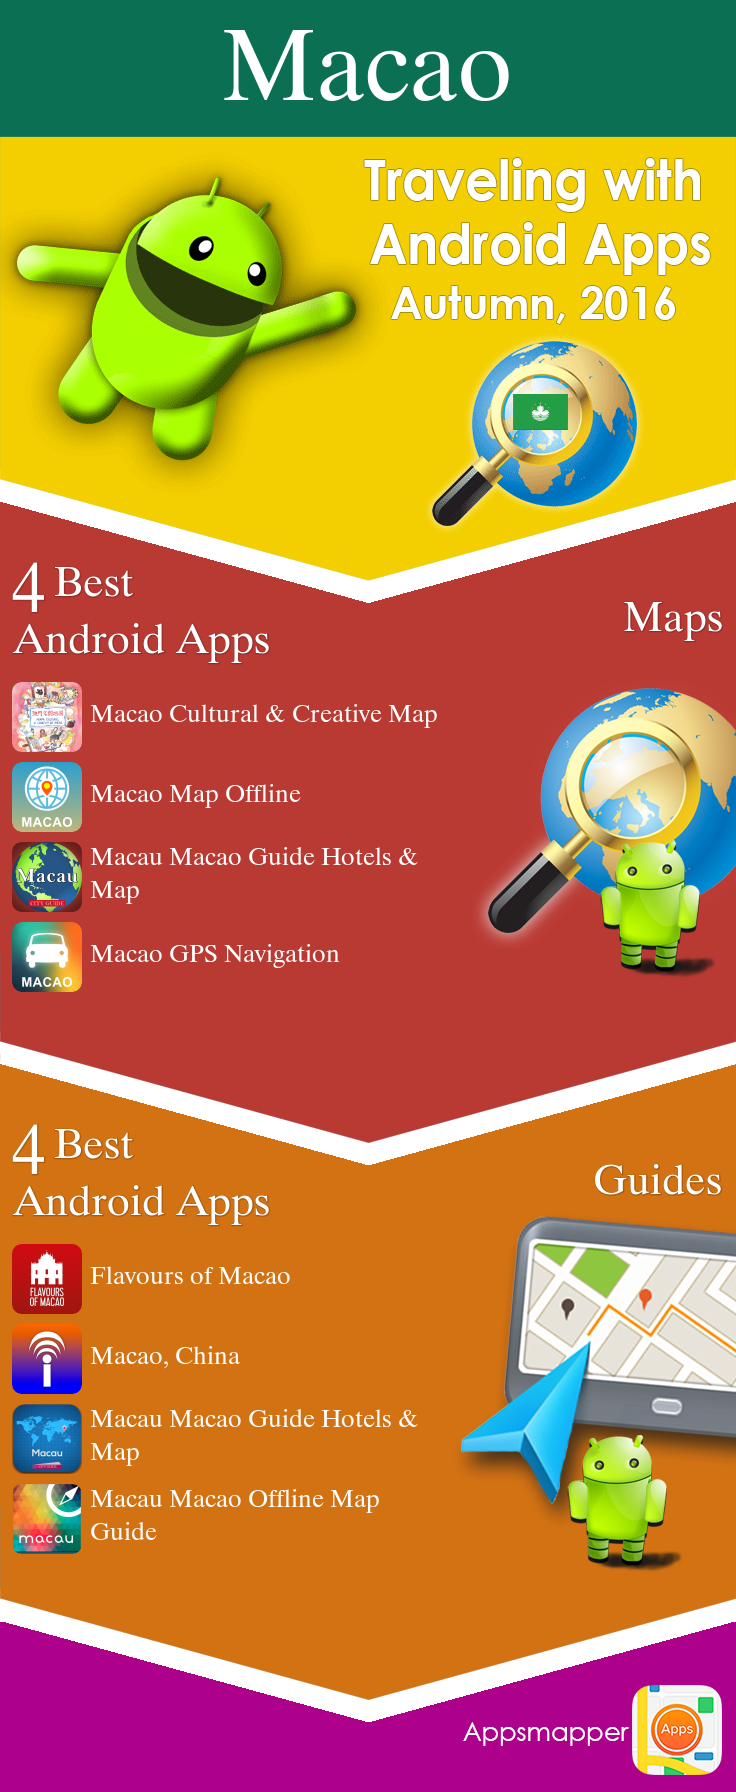 Macao Android apps: Travel Guides, Maps, Transportation, Biking, Museums, Parking, Sport and apps for Students.